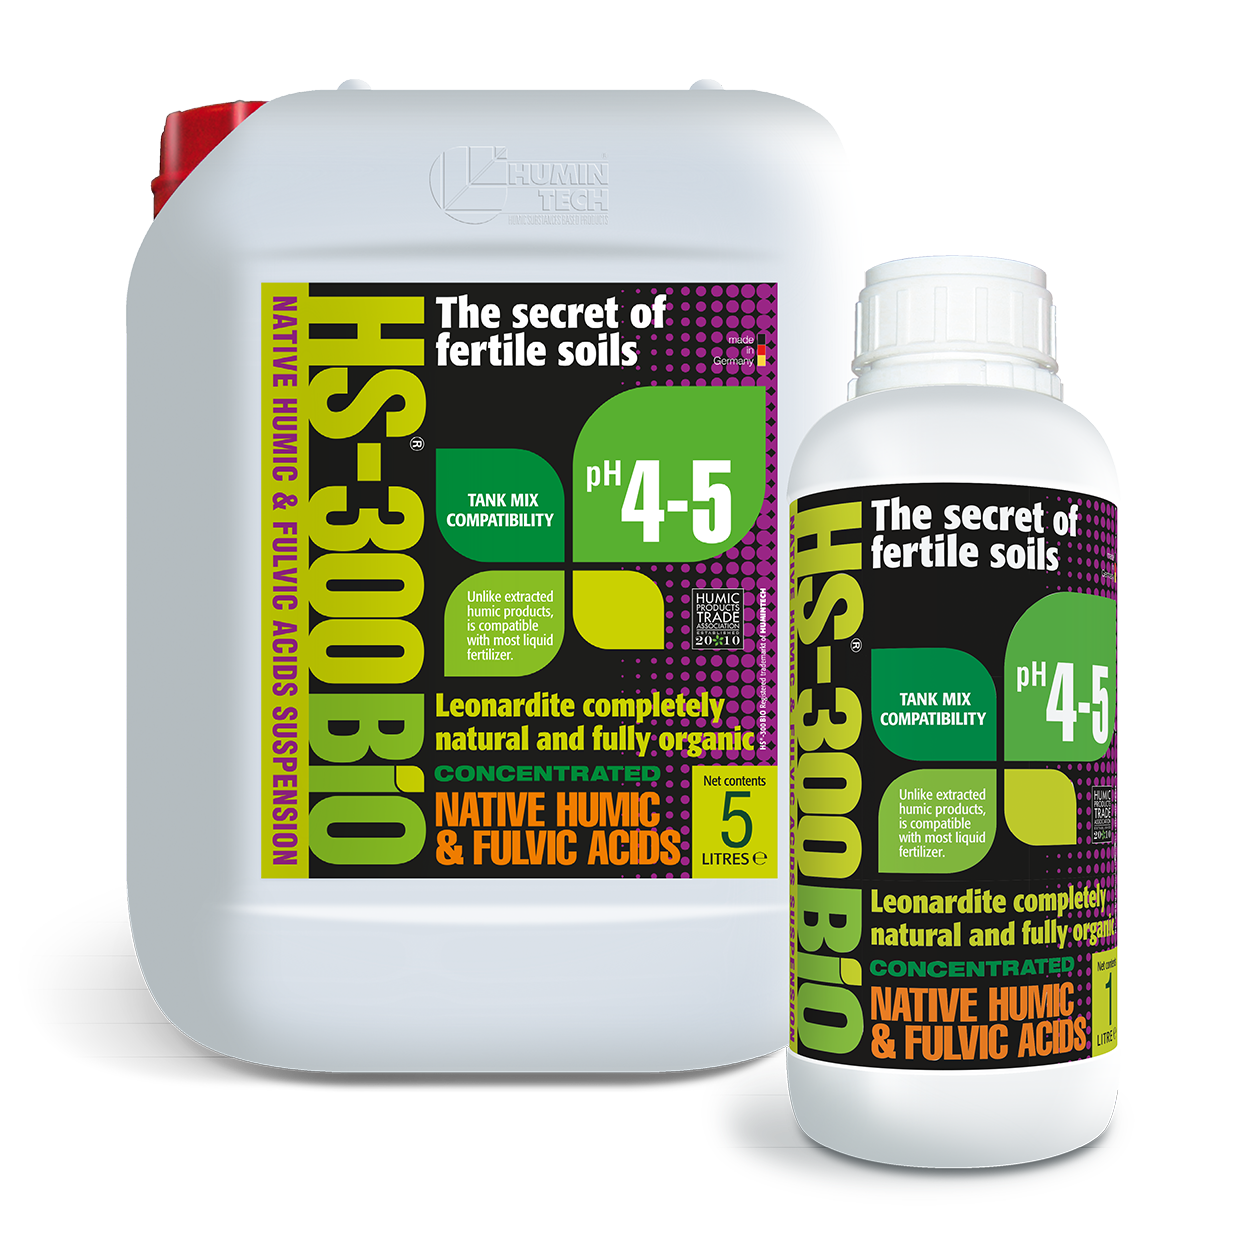 HS - 300BIO Native Humic Acid Suspension Organic Soil Conditioner